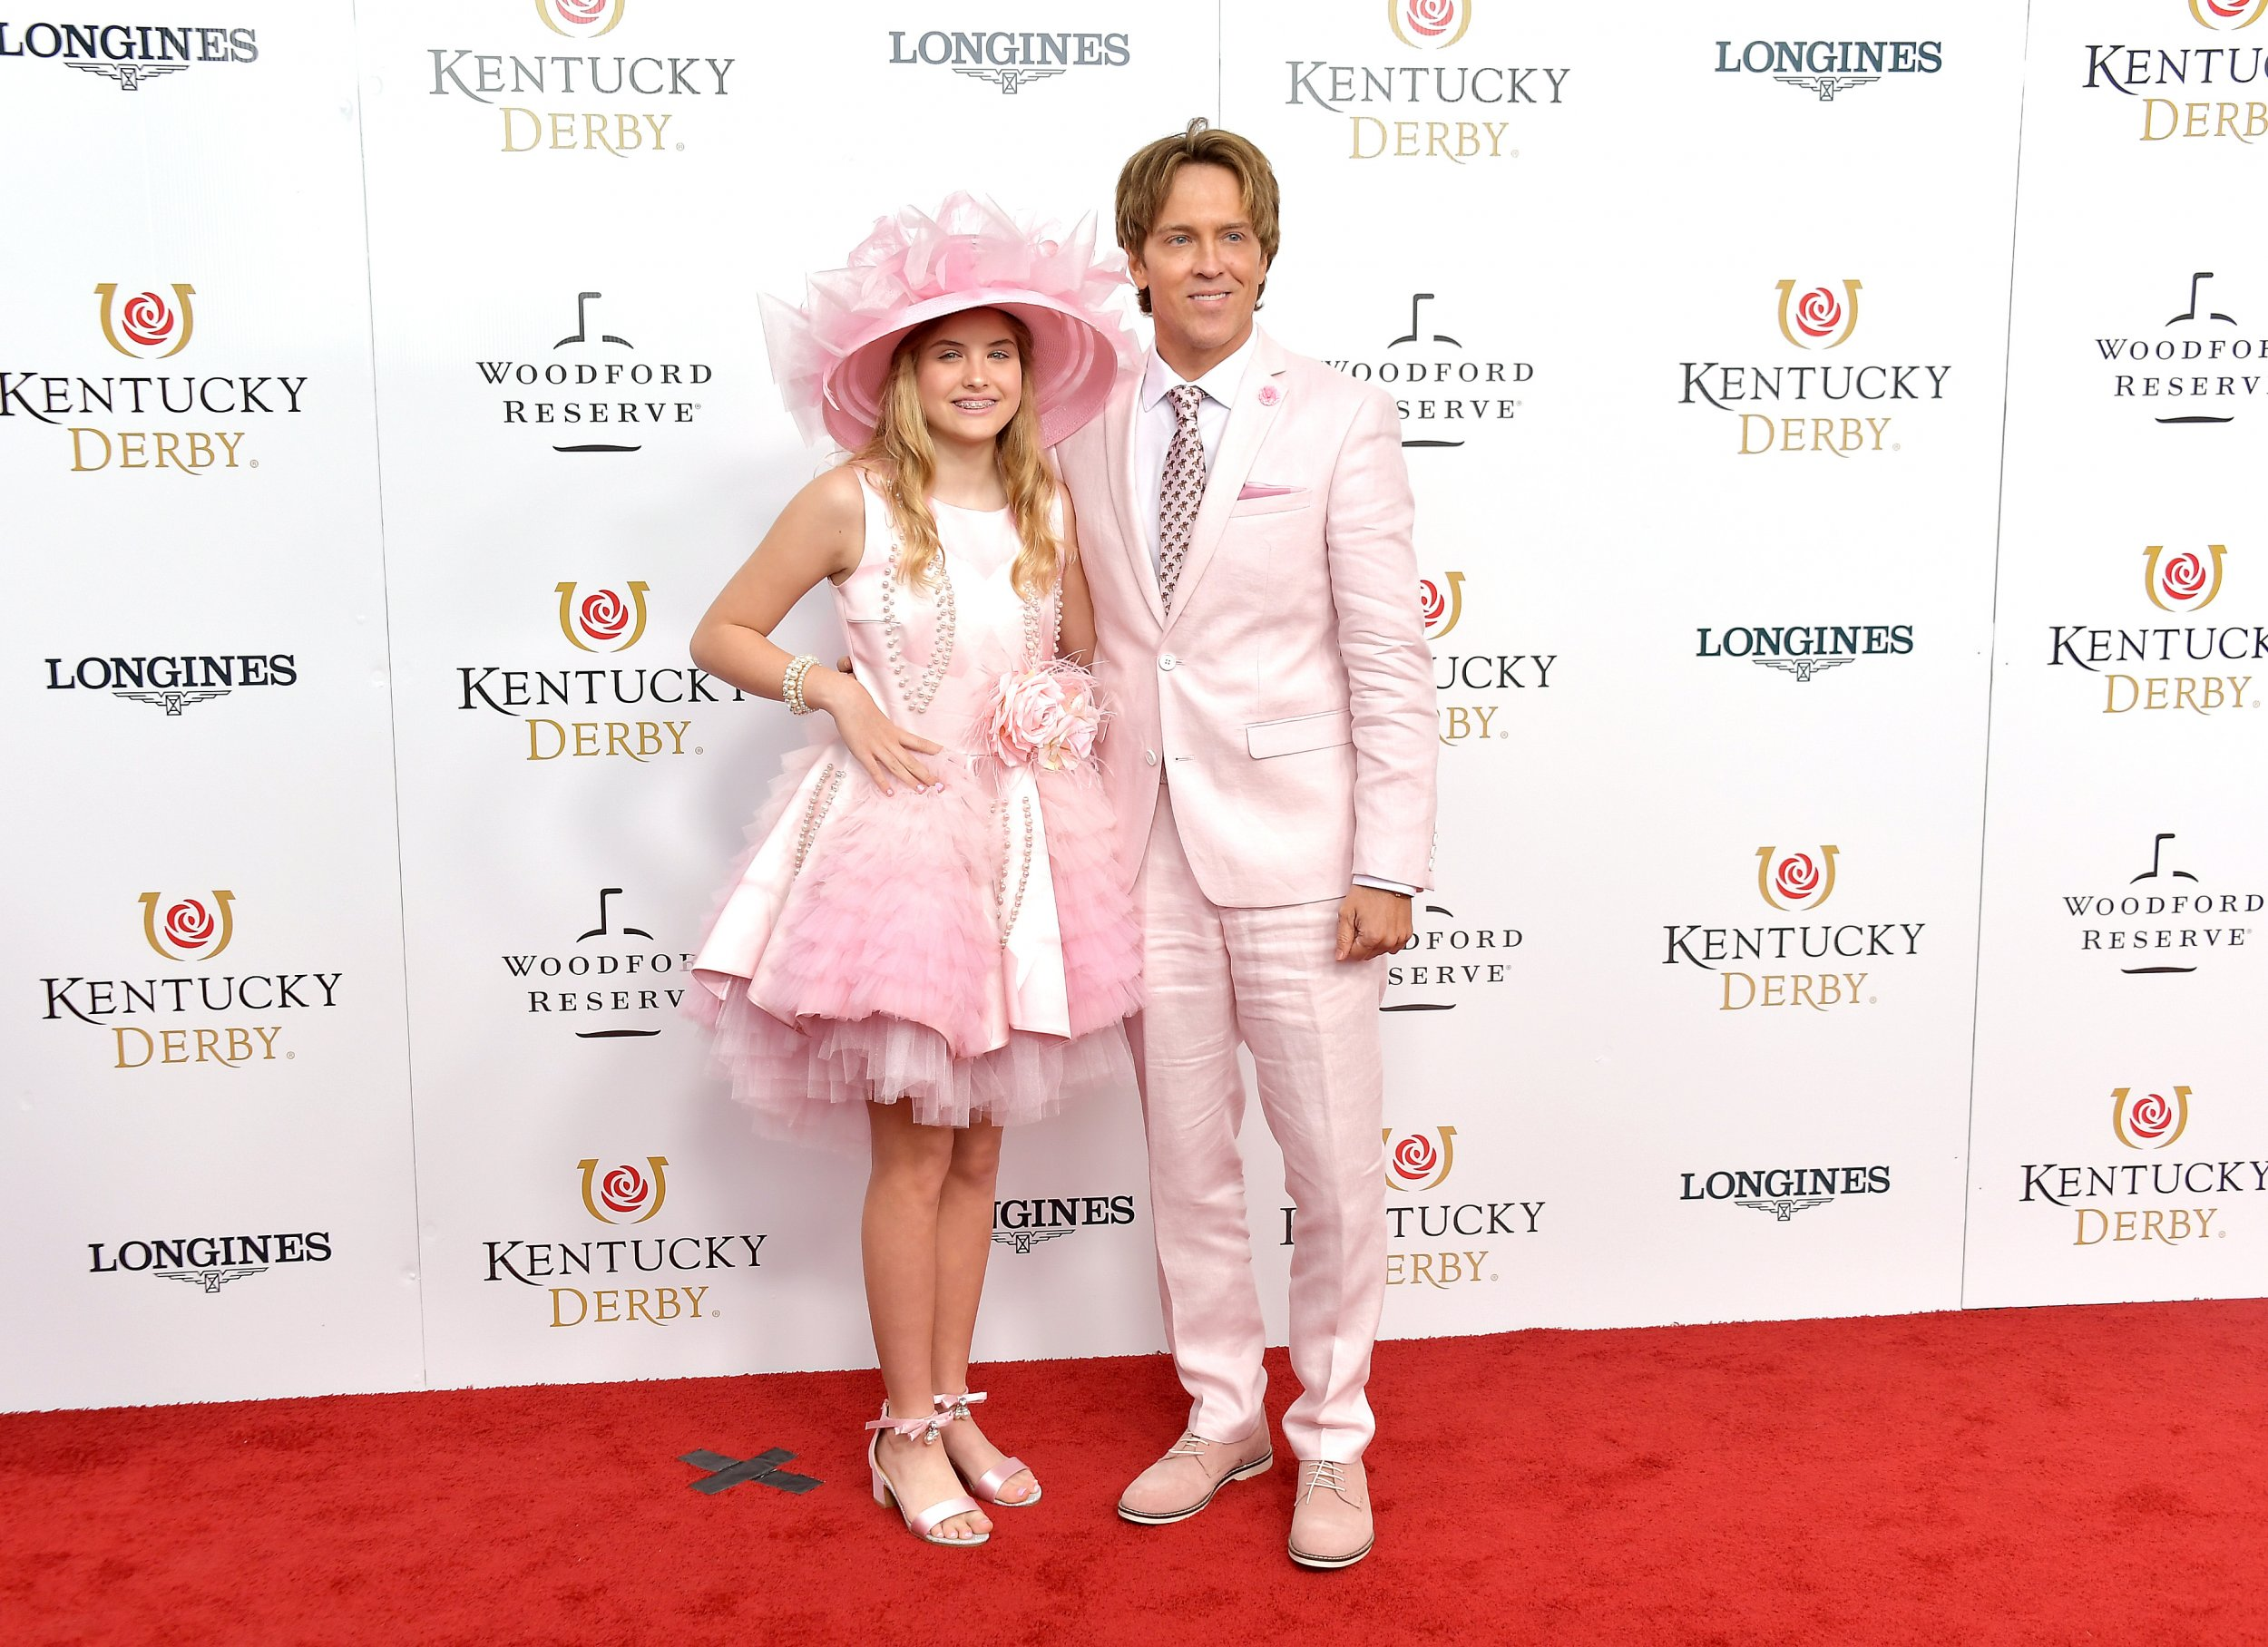 47f63bea60ad2 Dannielynn Birkhead and Larry Birkhead attend the 145th Kentucky Derby at  Churchill Downs on Saturday in Louisville